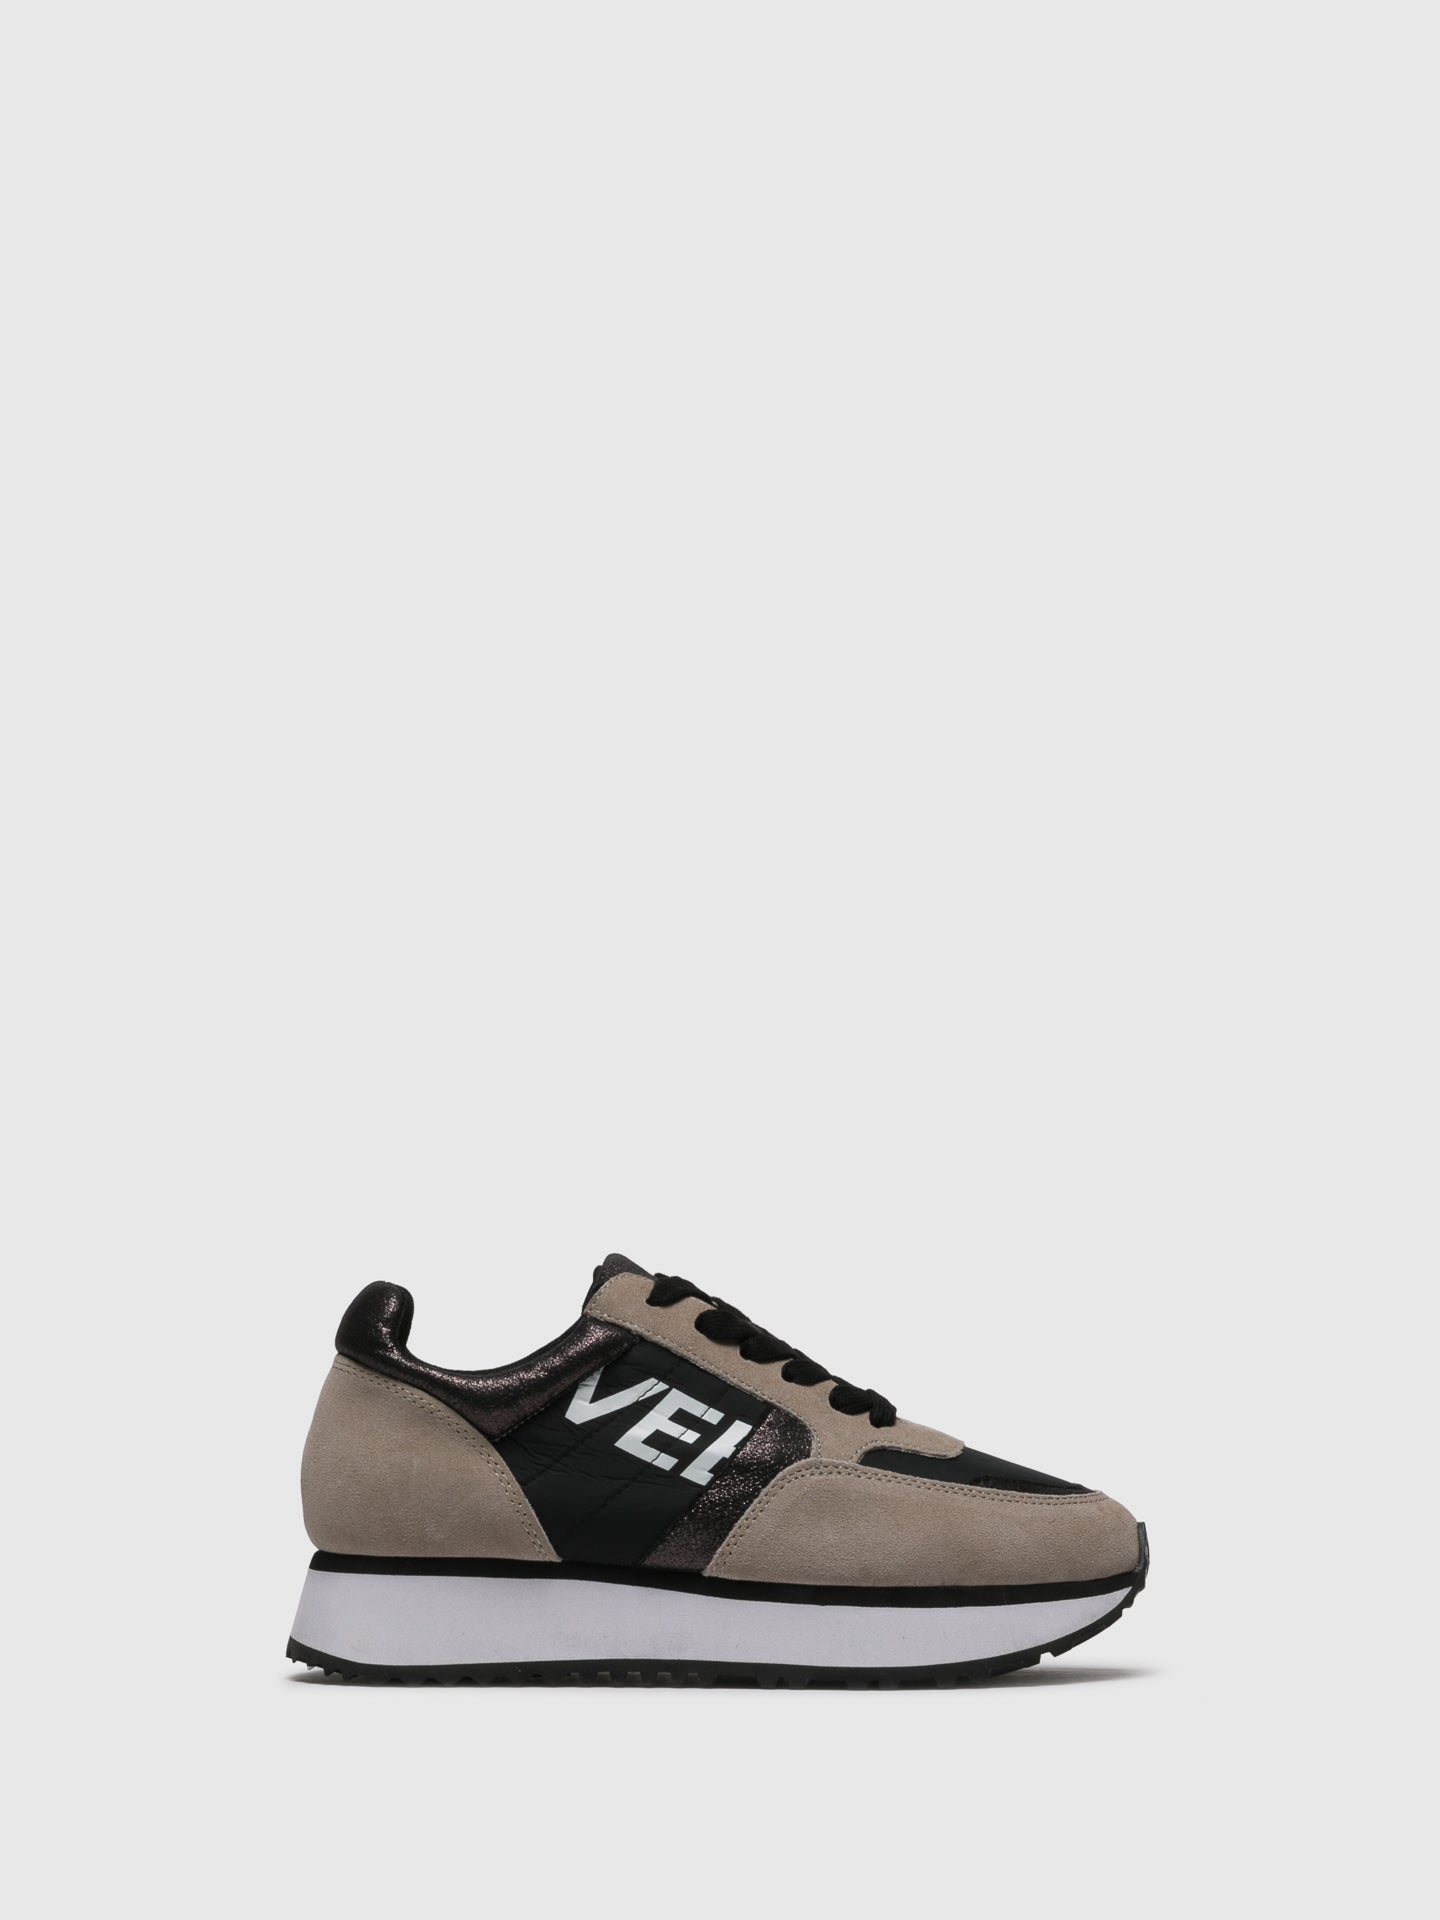 EMANUÉLLE VEE Tan Black Lace-up Trainers